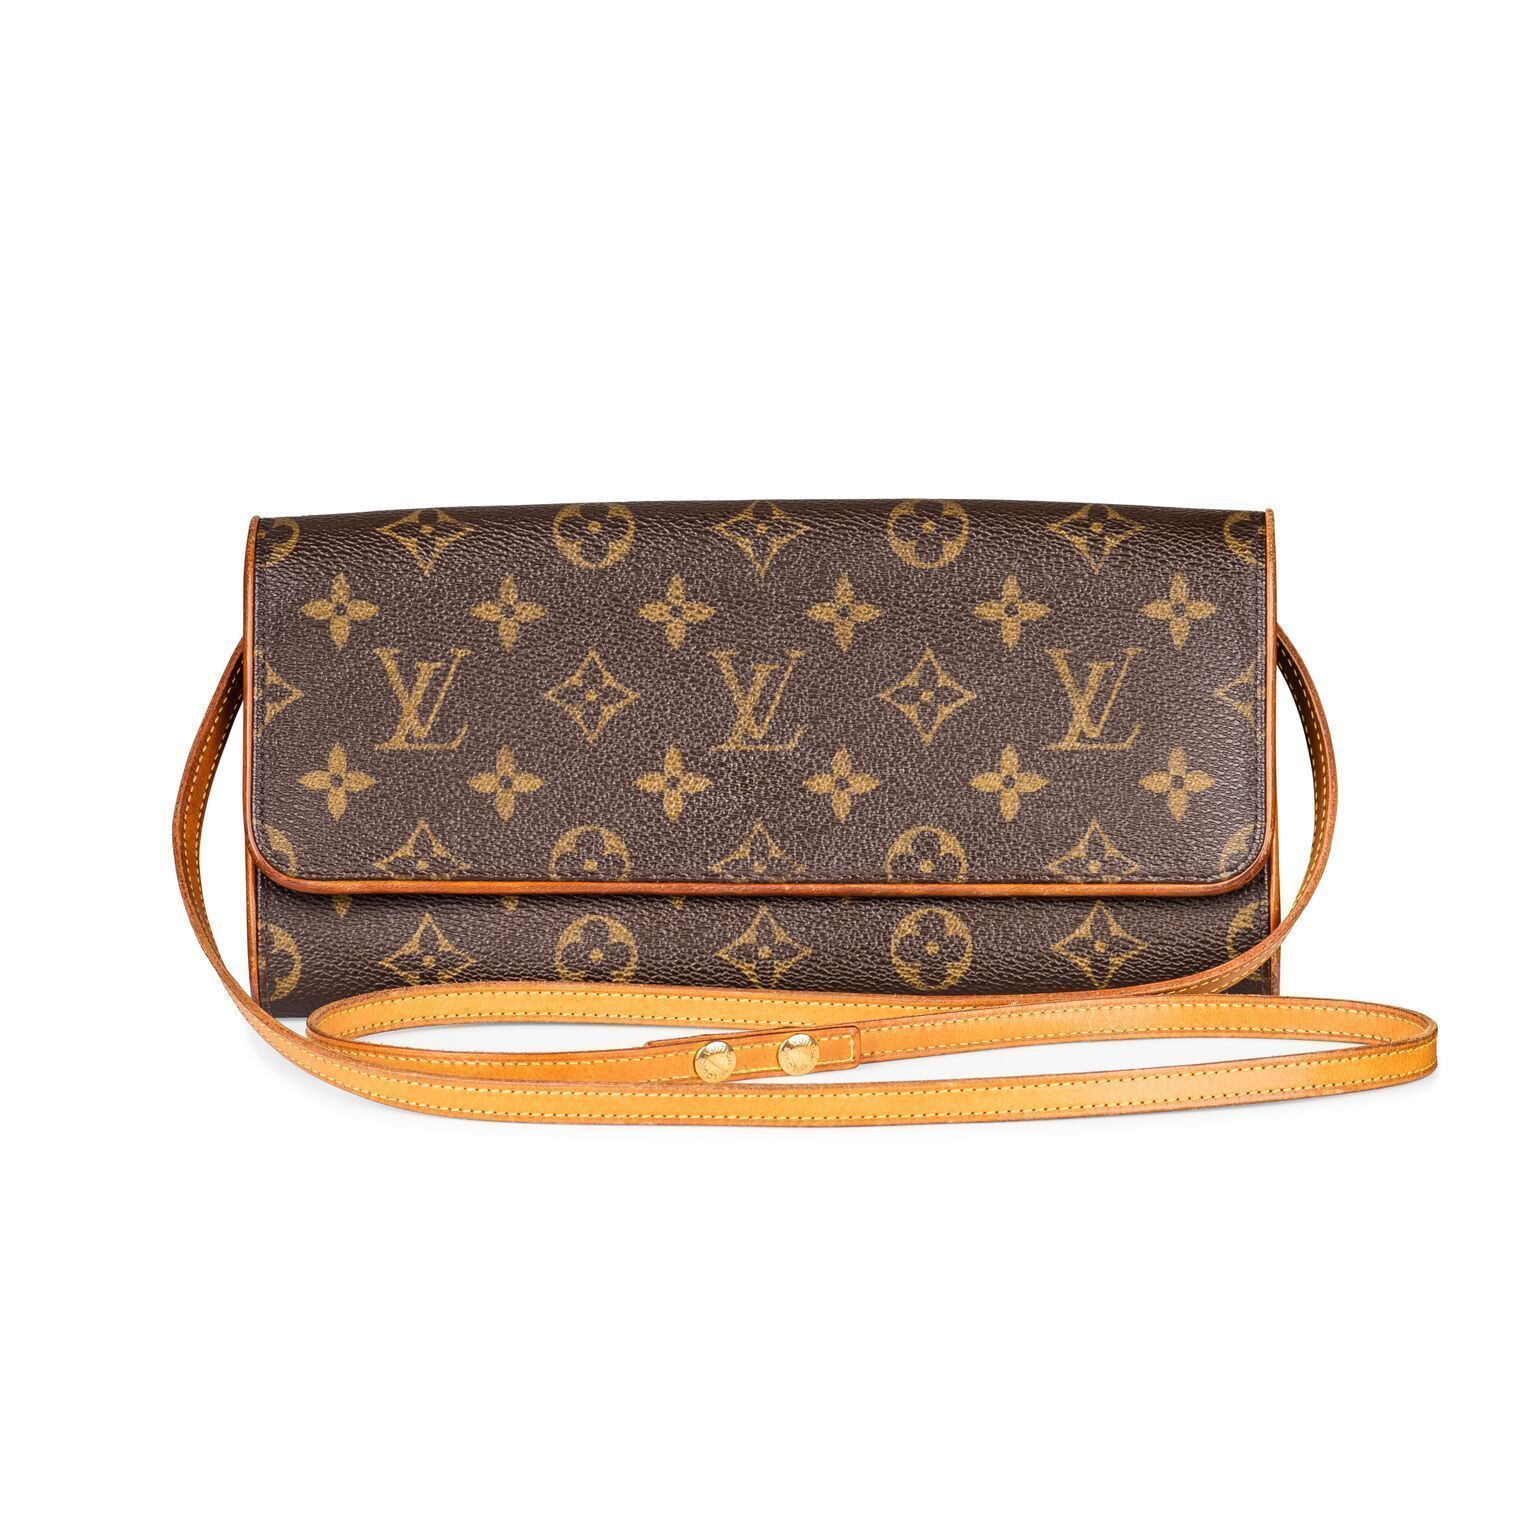 dd7d4de16430 Louis Vuitton Monogram Pochette Twin Cross body Bag. – The Vintage Contessa    Times Past